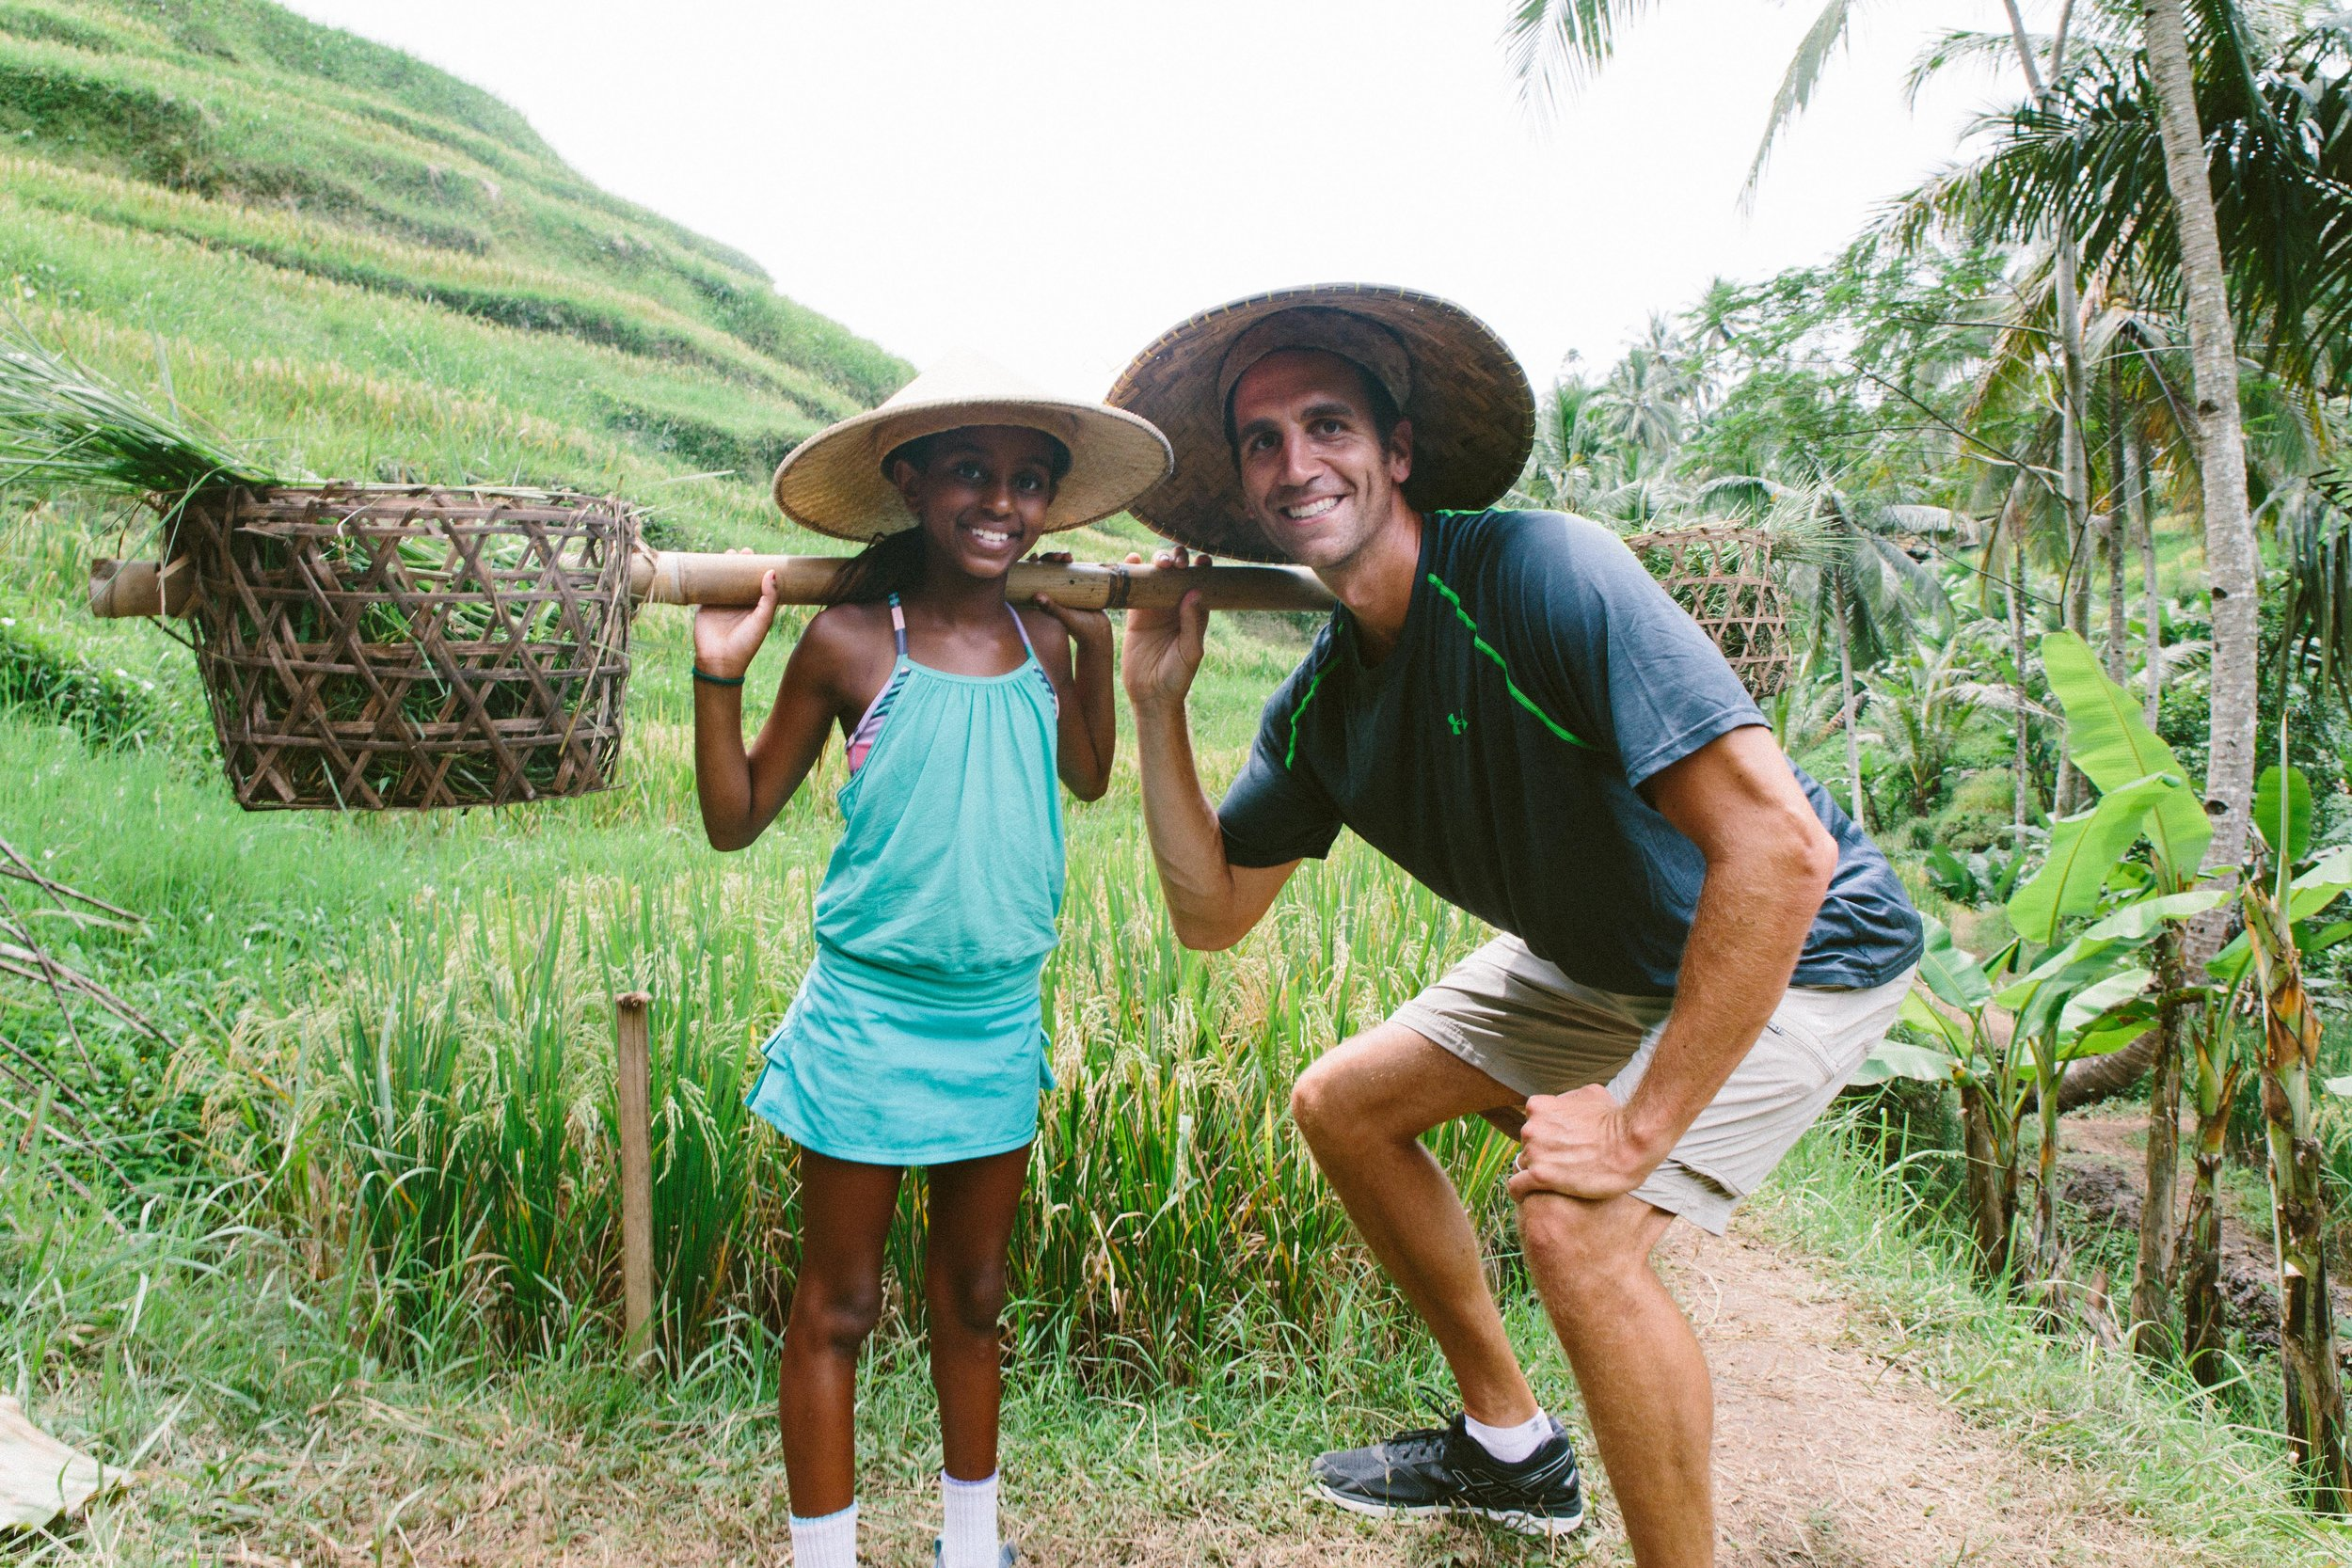 Kya and Dad hard at work harvesting the rice in the beautiful terraces in Ubud. It takes 3.5-4 months from the initial planting of the seedling until it is time to harvest. Many families here in Indonesia use their land to grow white, red, and black rice.